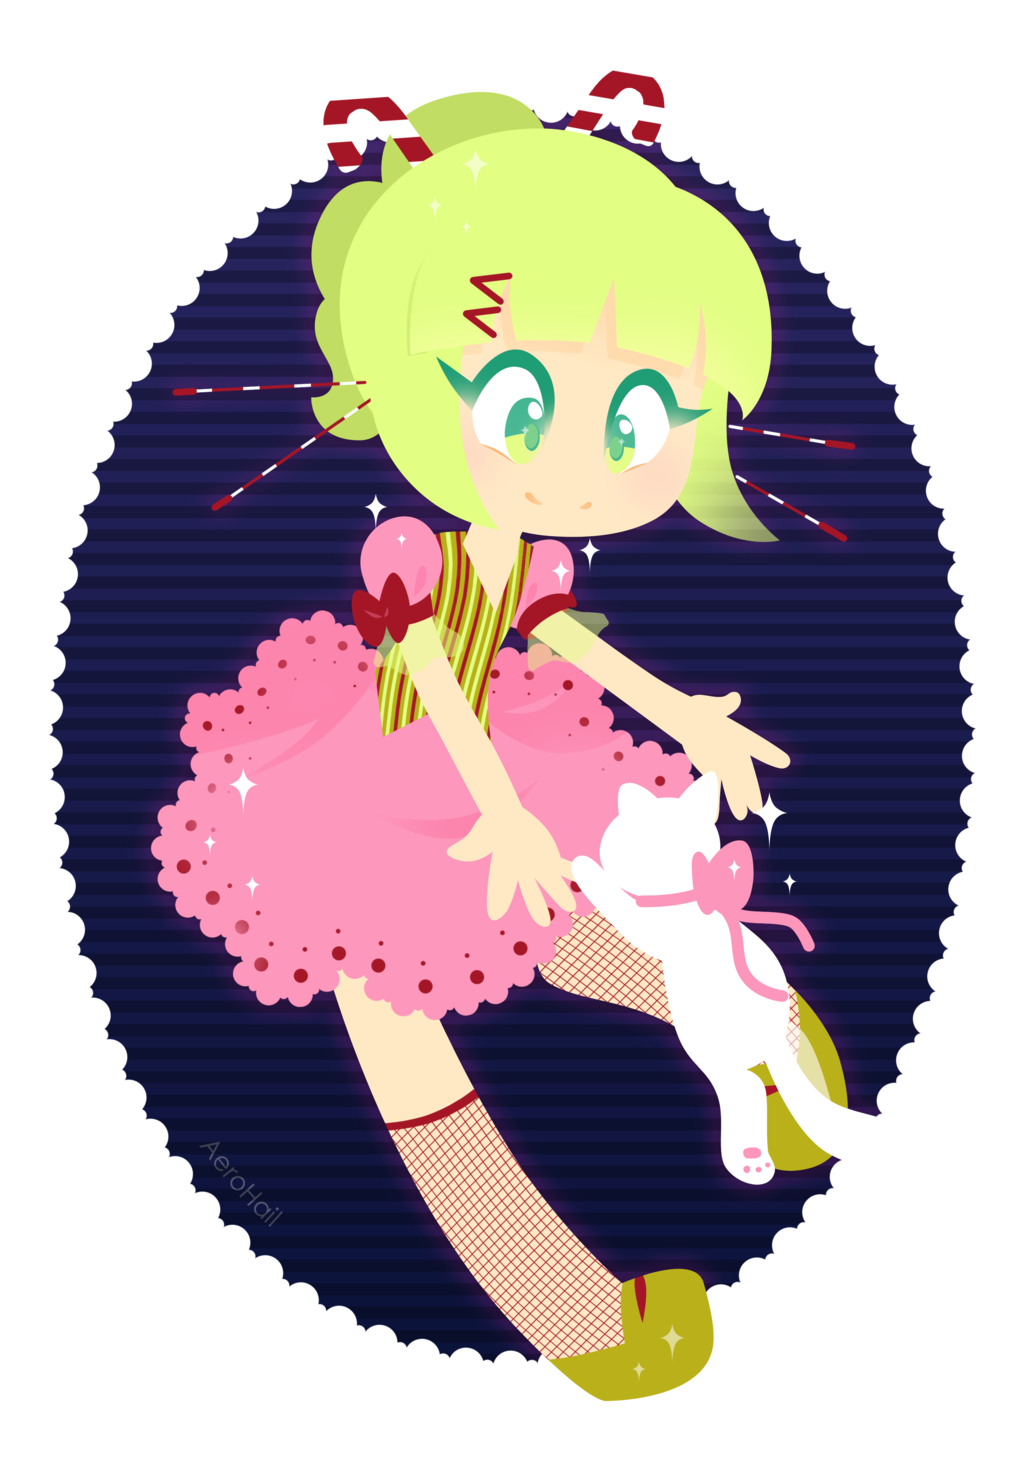 At candy kaine by. Clipart explosion dynamic character